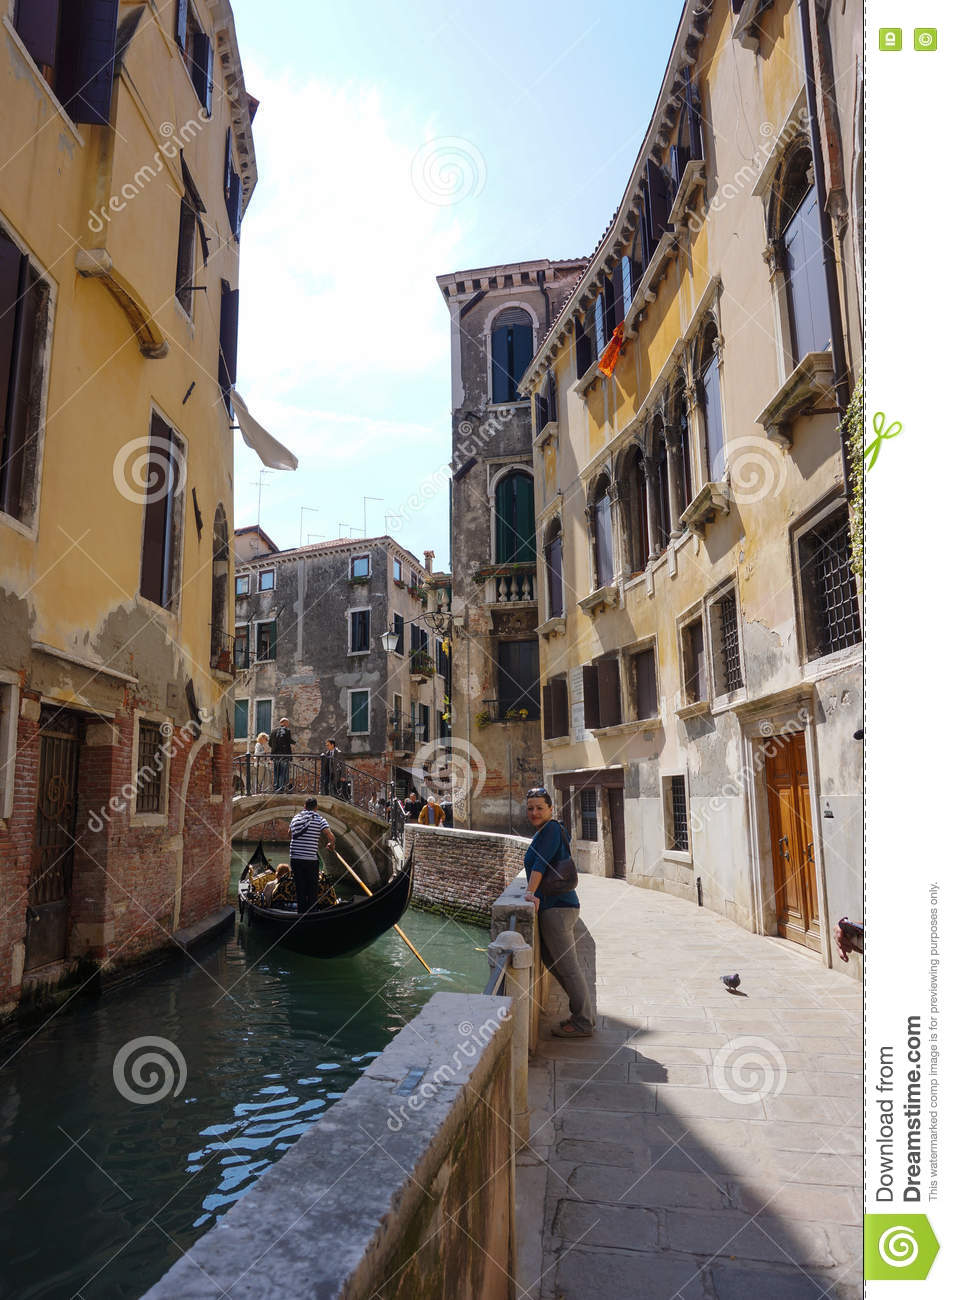 Venice city dreams descriptive essay city venice | Research paper